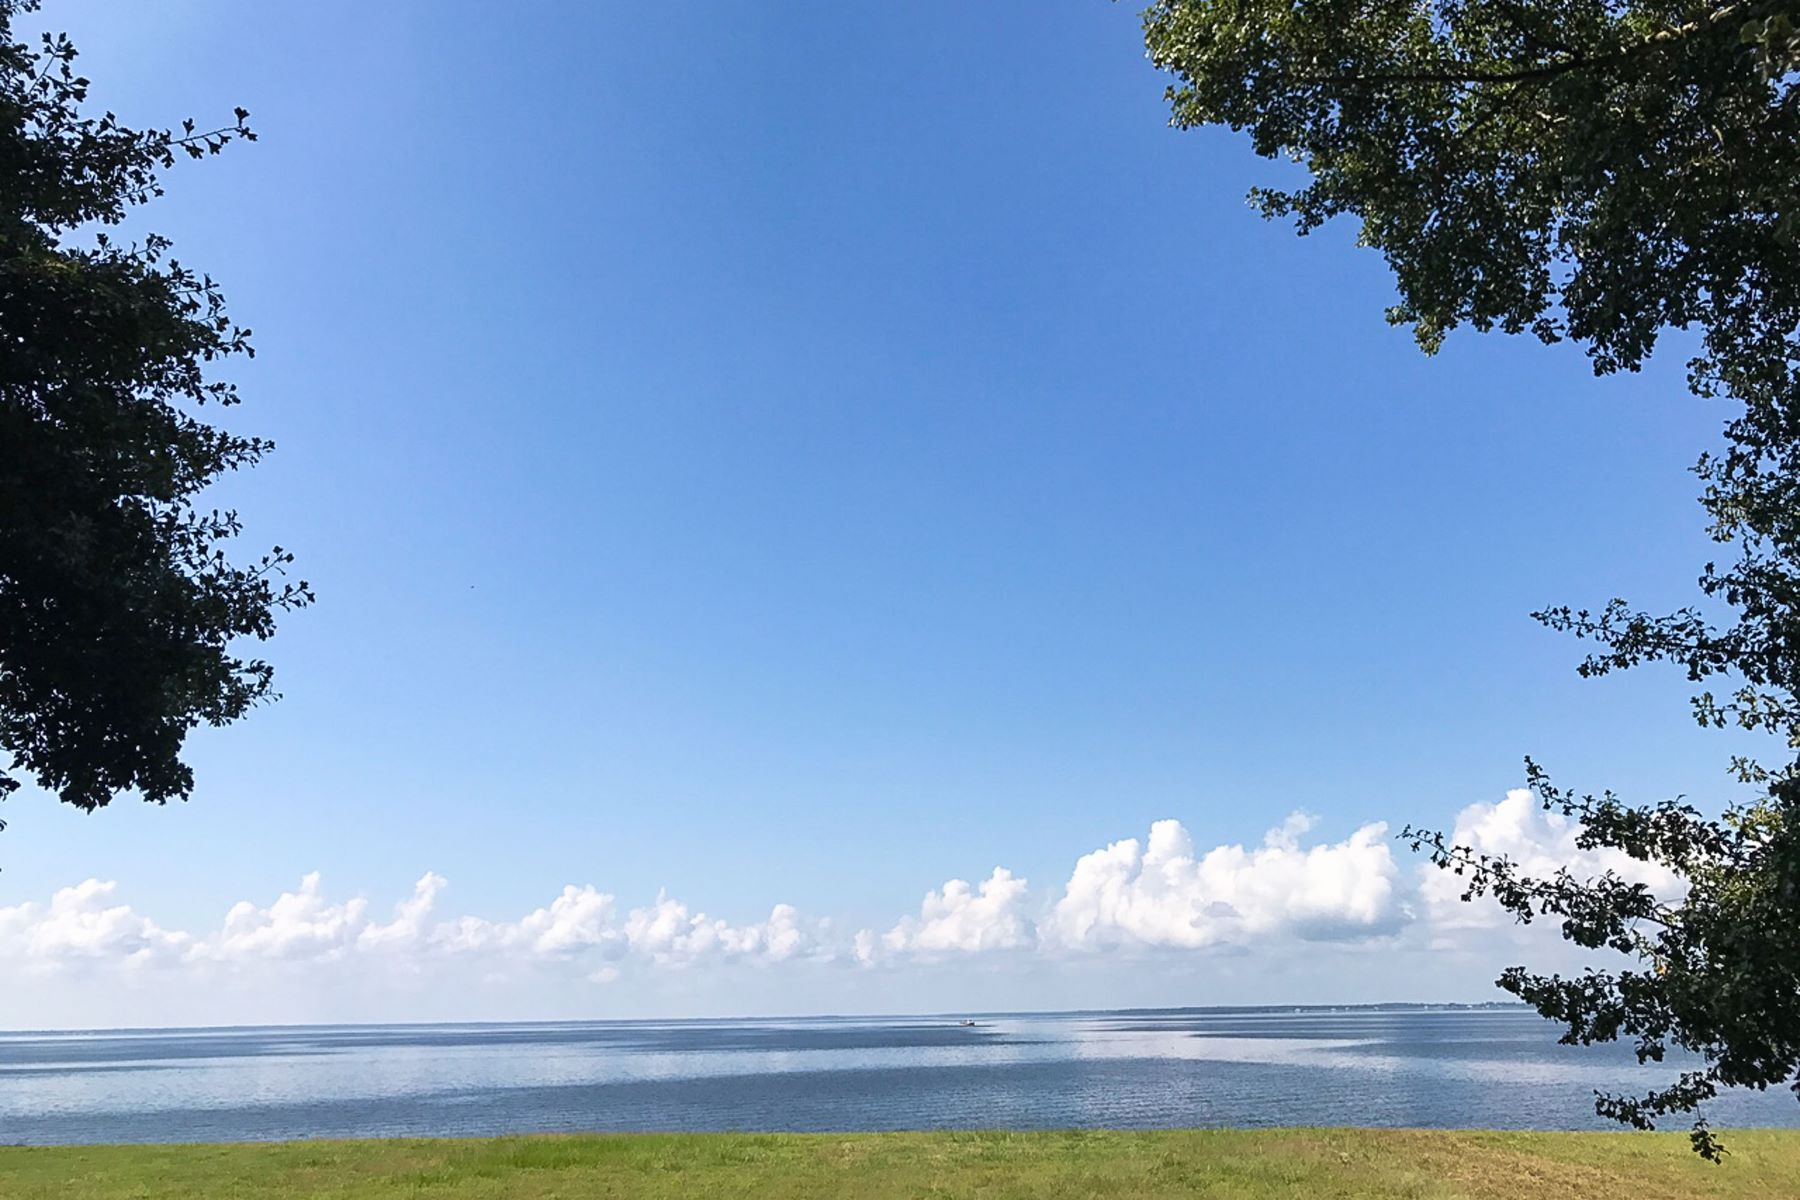 Terreno por un Venta en Edenton Bay Plantation Waterfront lot 15 404 Bay Point Dr Edenton, Carolina Del Norte 27932 Estados Unidos